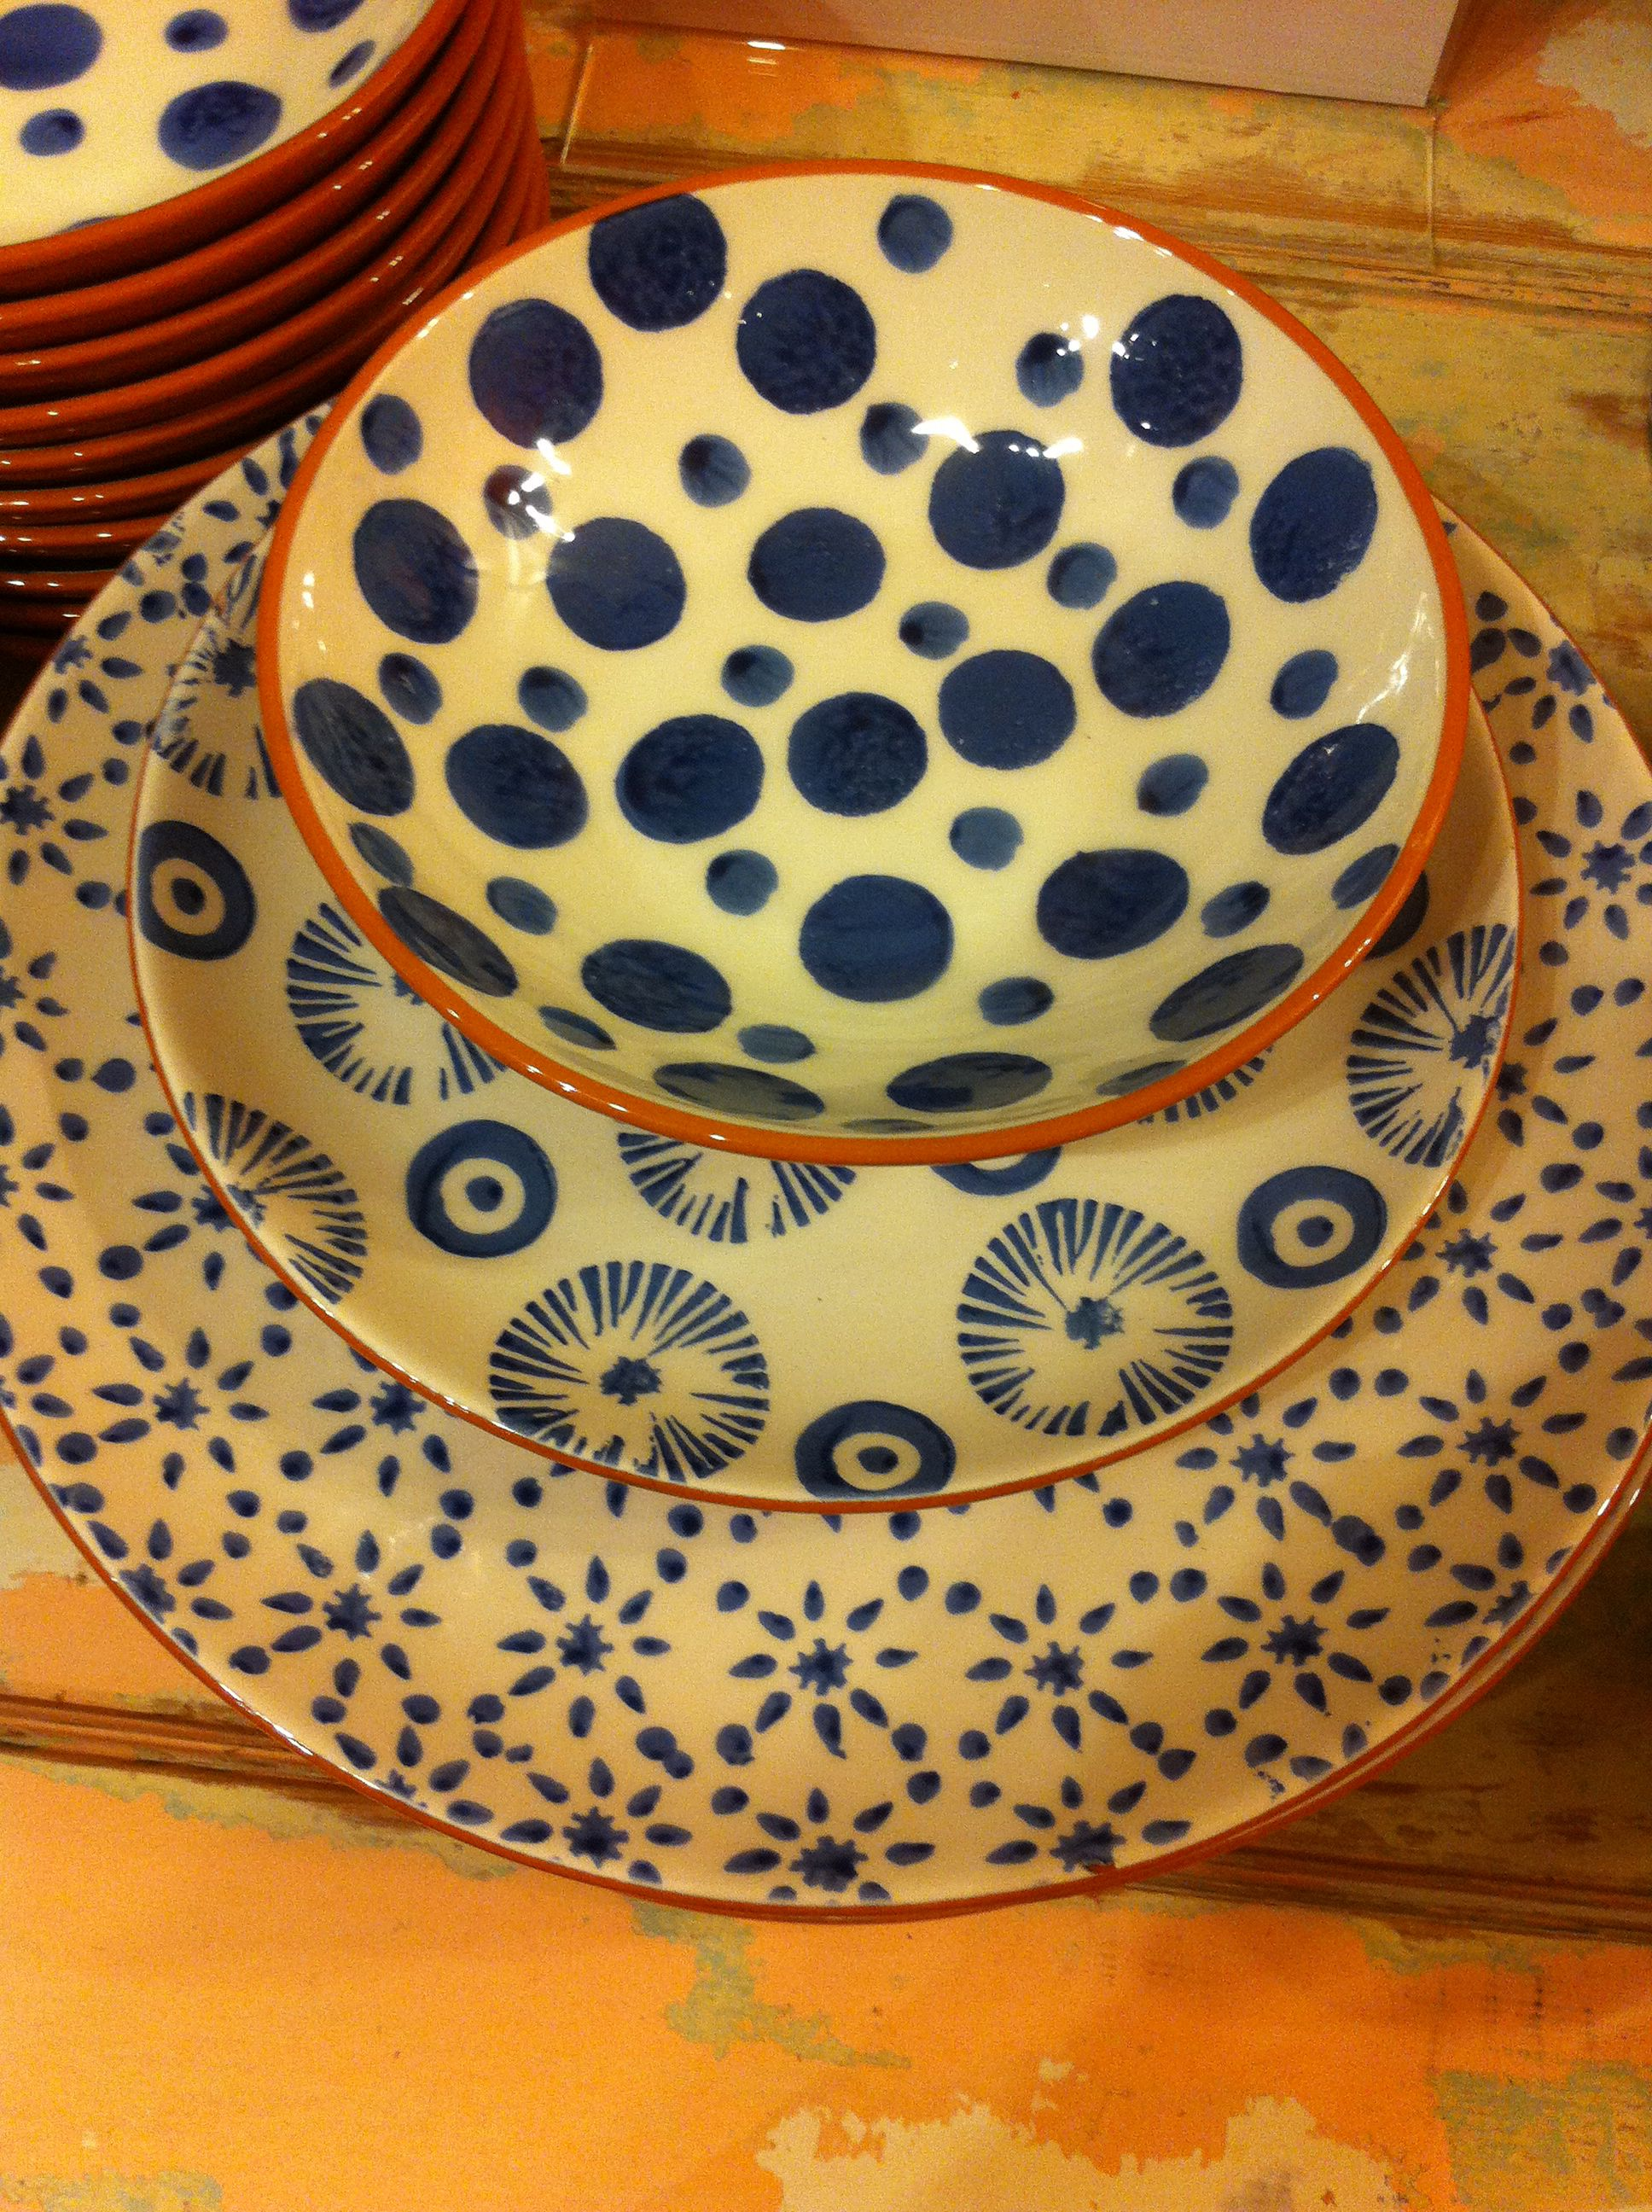 Canvas Home Sponge ware from Portugal. Hand painted dinnerware. : dinnerware from portugal - pezcame.com